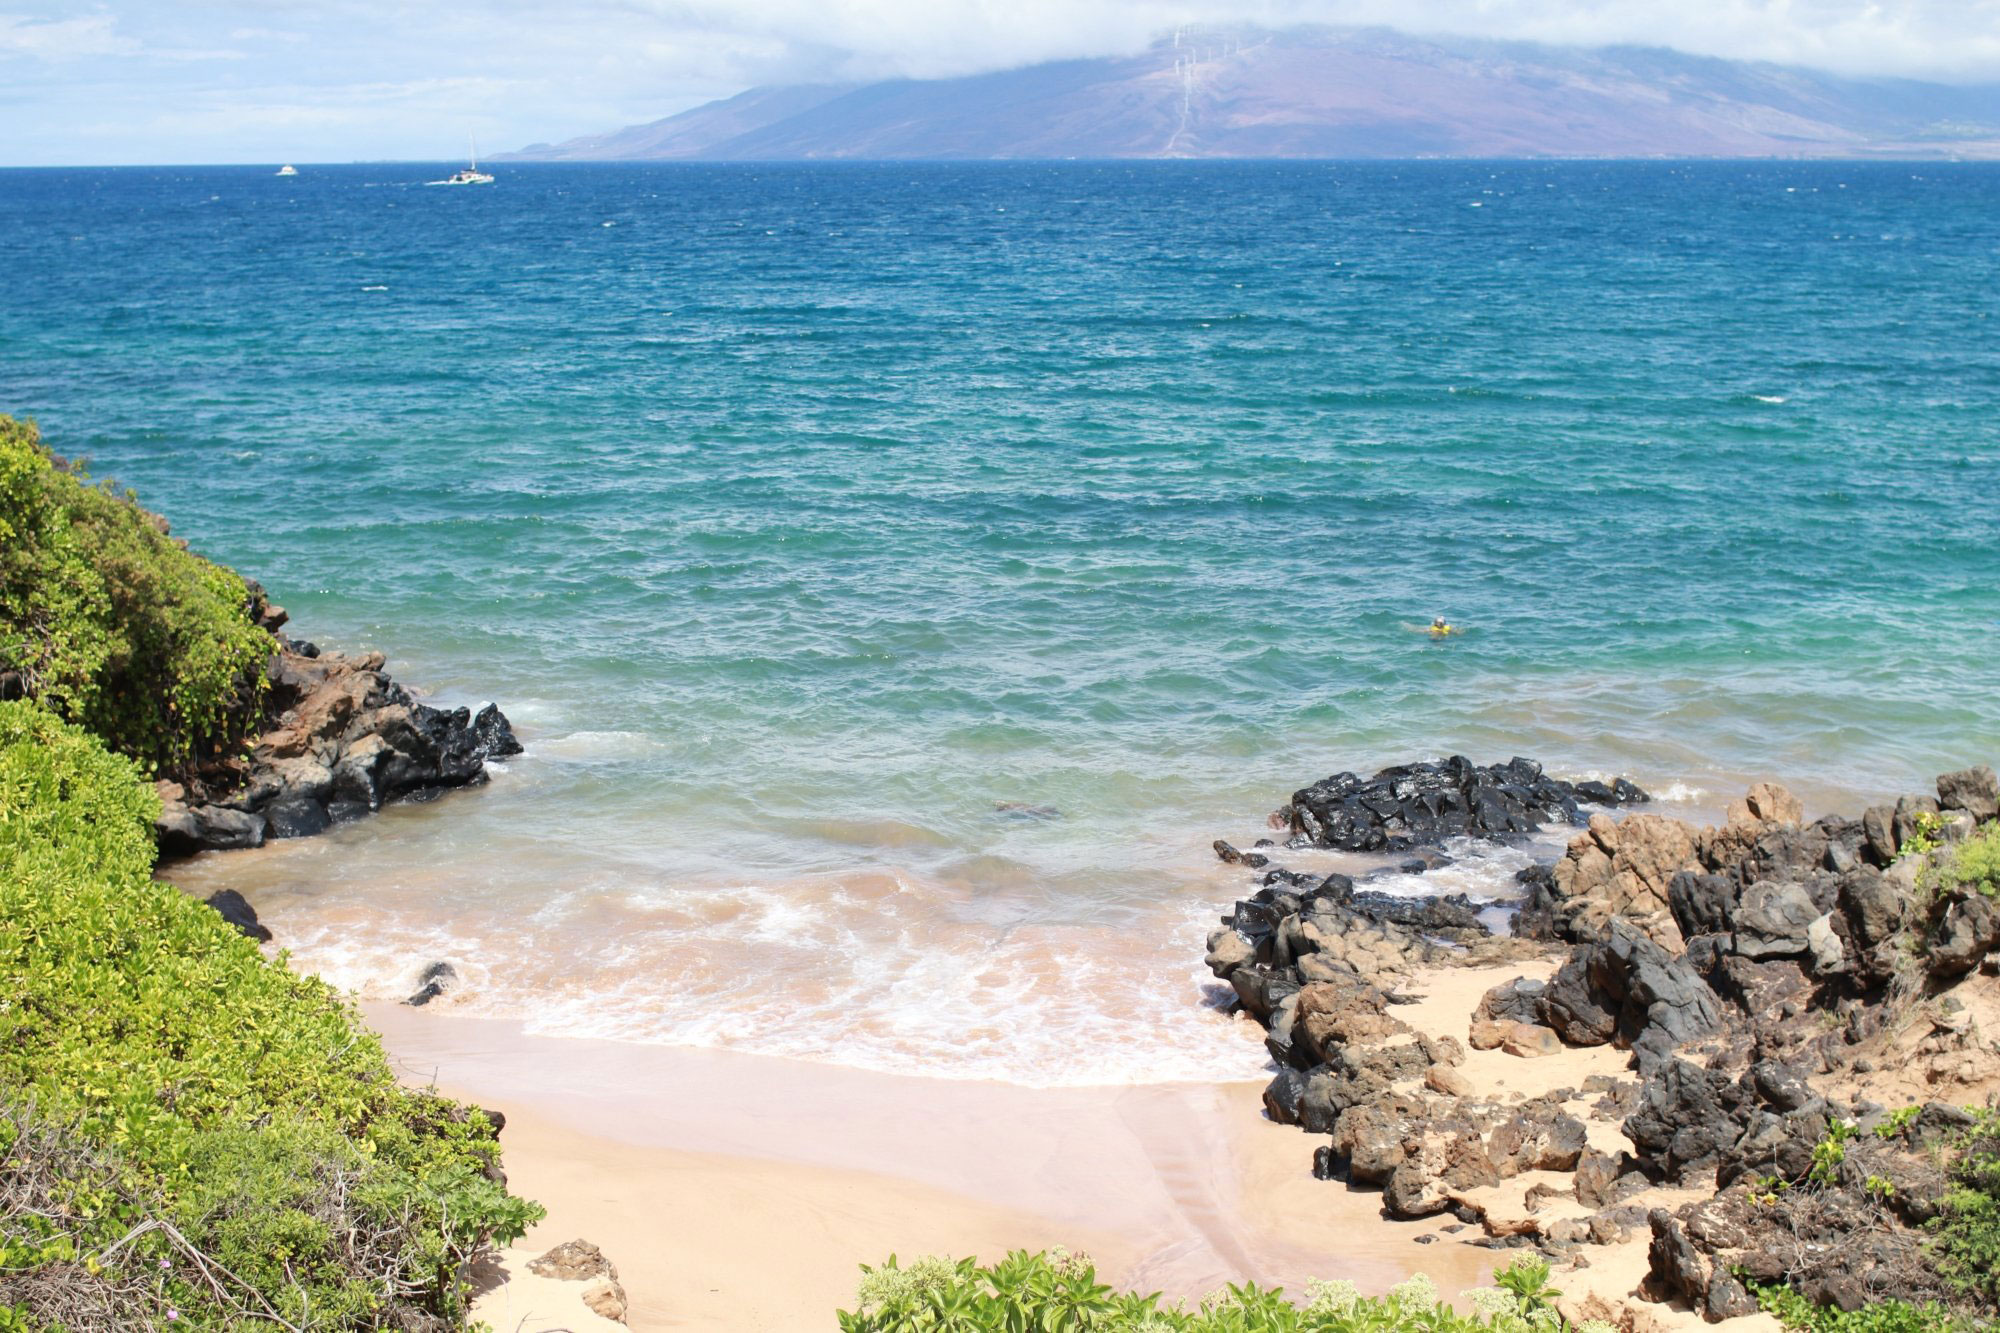 Tucked in a curve of Maui's coastline, this impossibly lovely spot is bordered by some of the most luxurious resorts on the island. Never fear: The beach is public, and sunbathing is absolutely free.